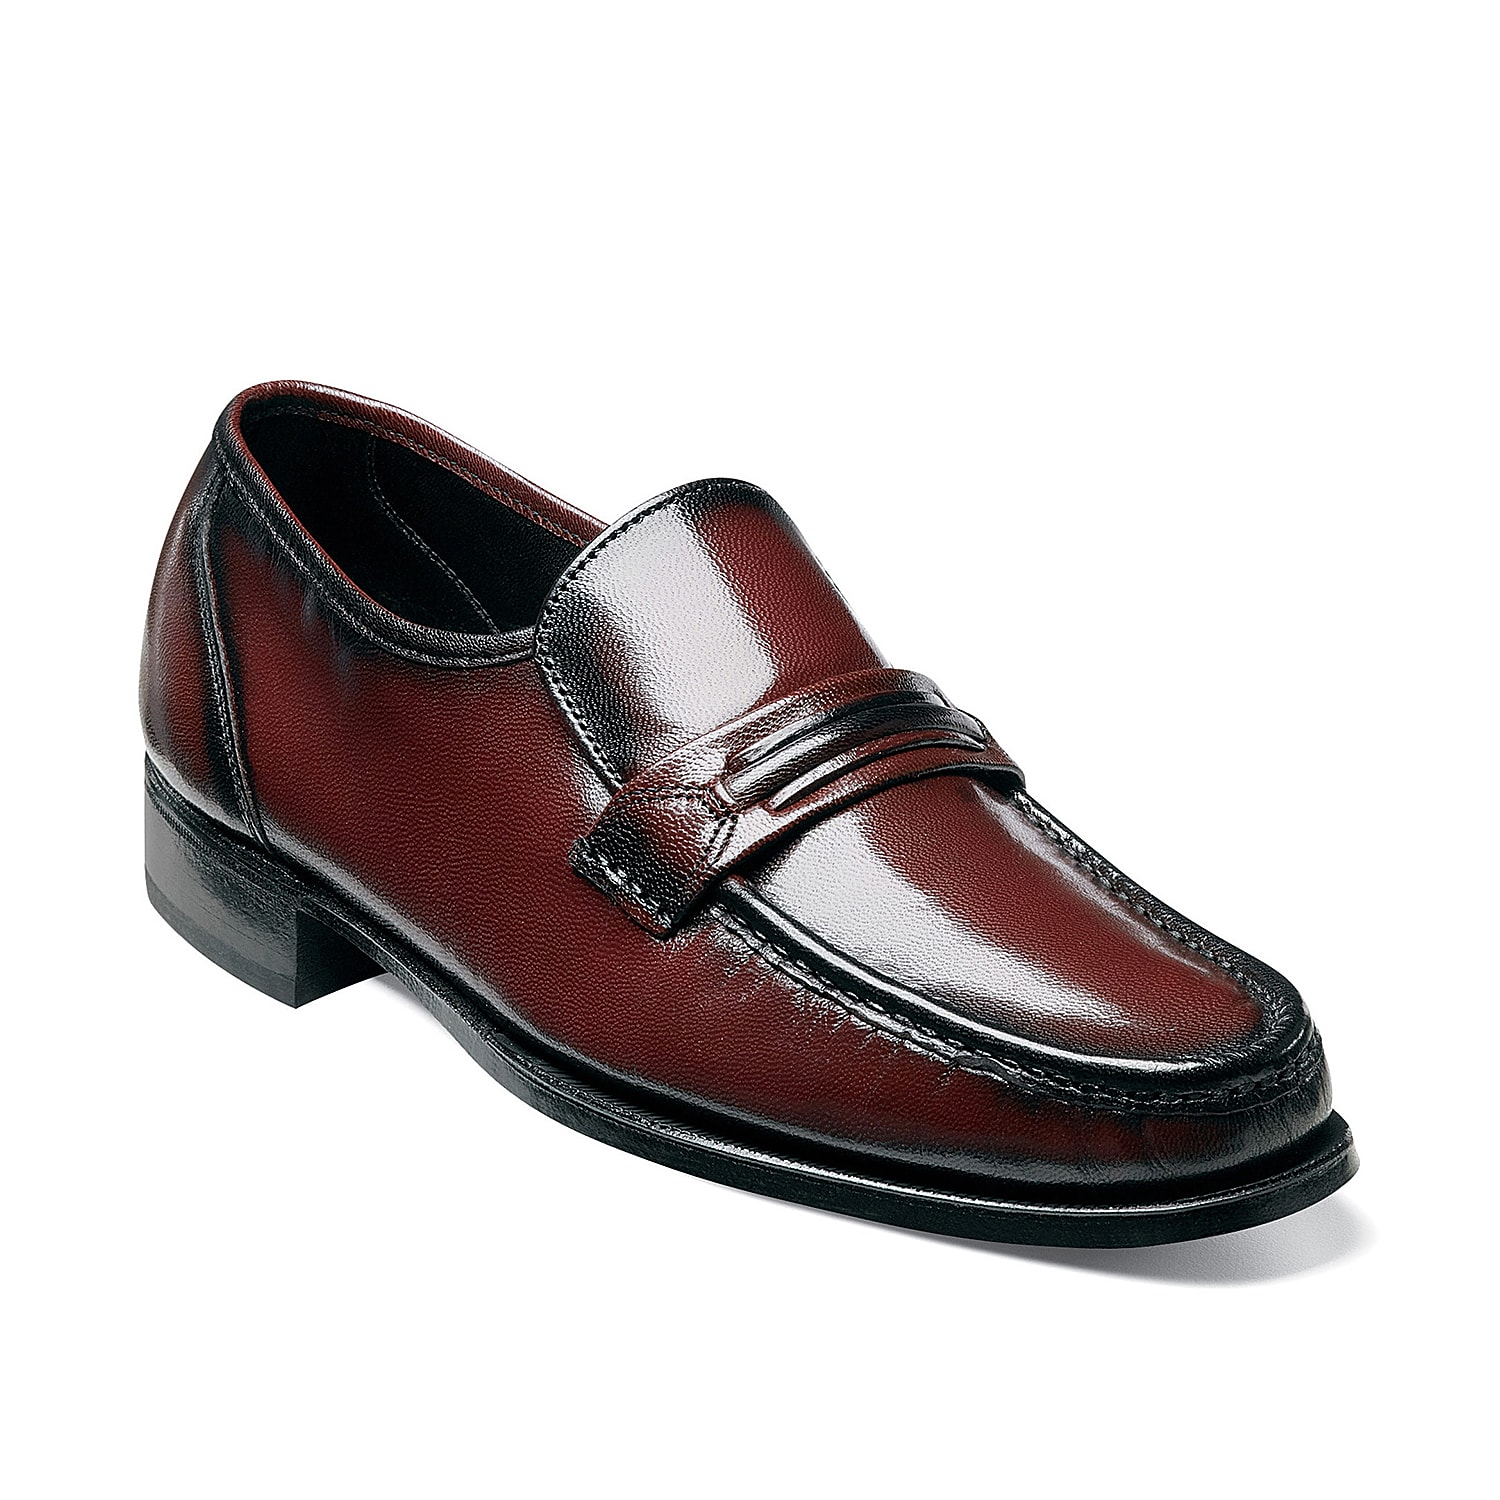 The loafer is a wardrobe staple for the modern man and the Florsheim Como is a great addition. Slip on this classic leather shoefor a sophisticated look that will go with just about any attire!